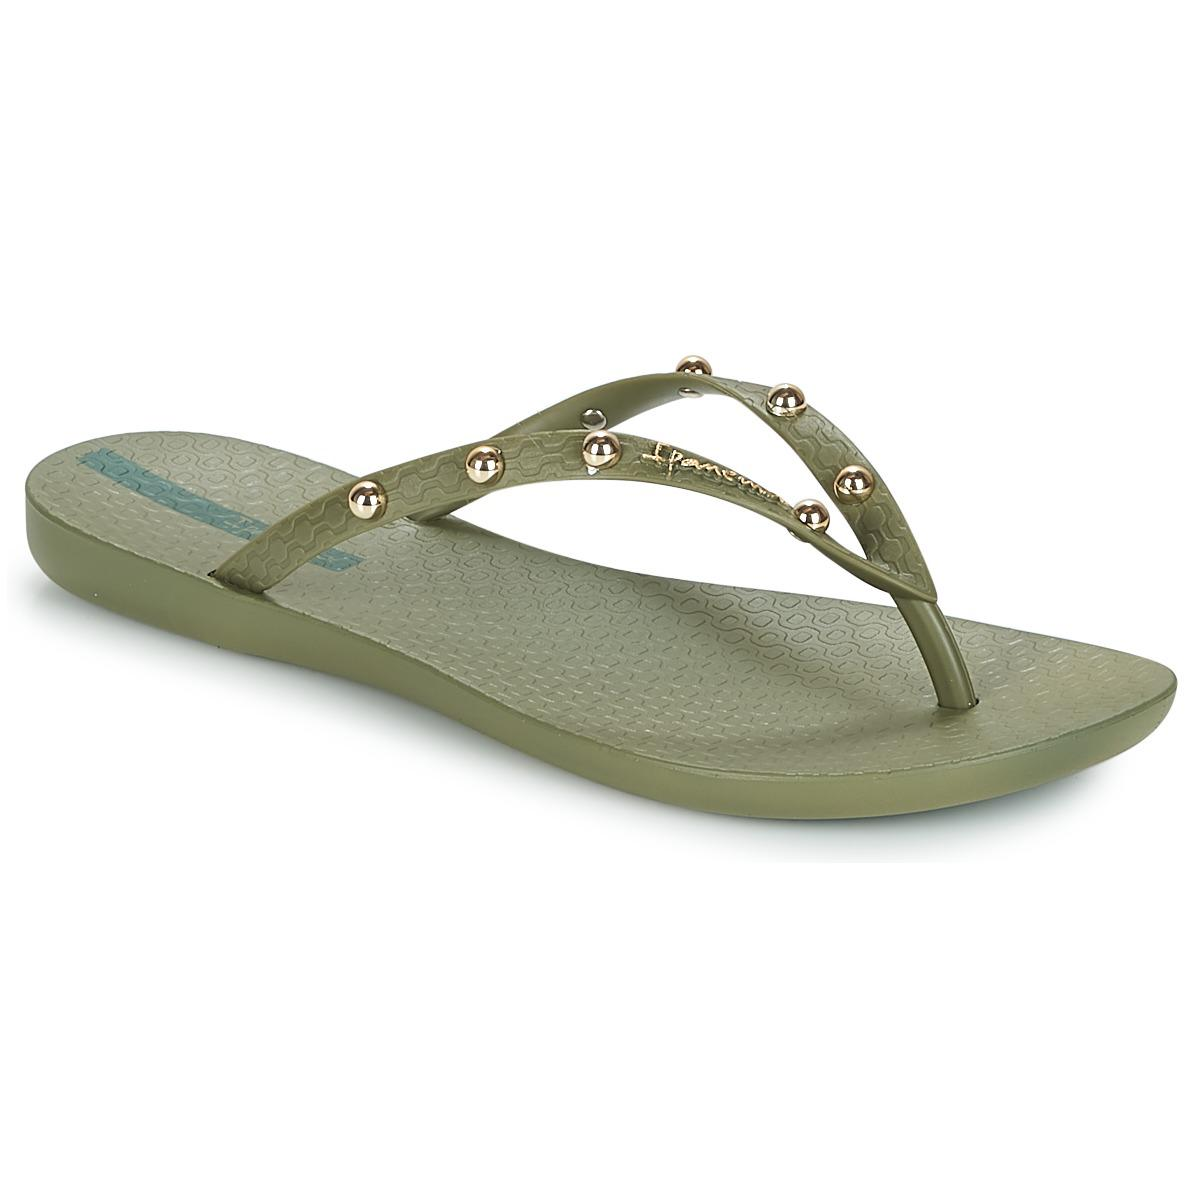 4509edb7cd7 Ipanema Wave Glam Women s Flip Flops   Sandals (shoes) In Green in ...